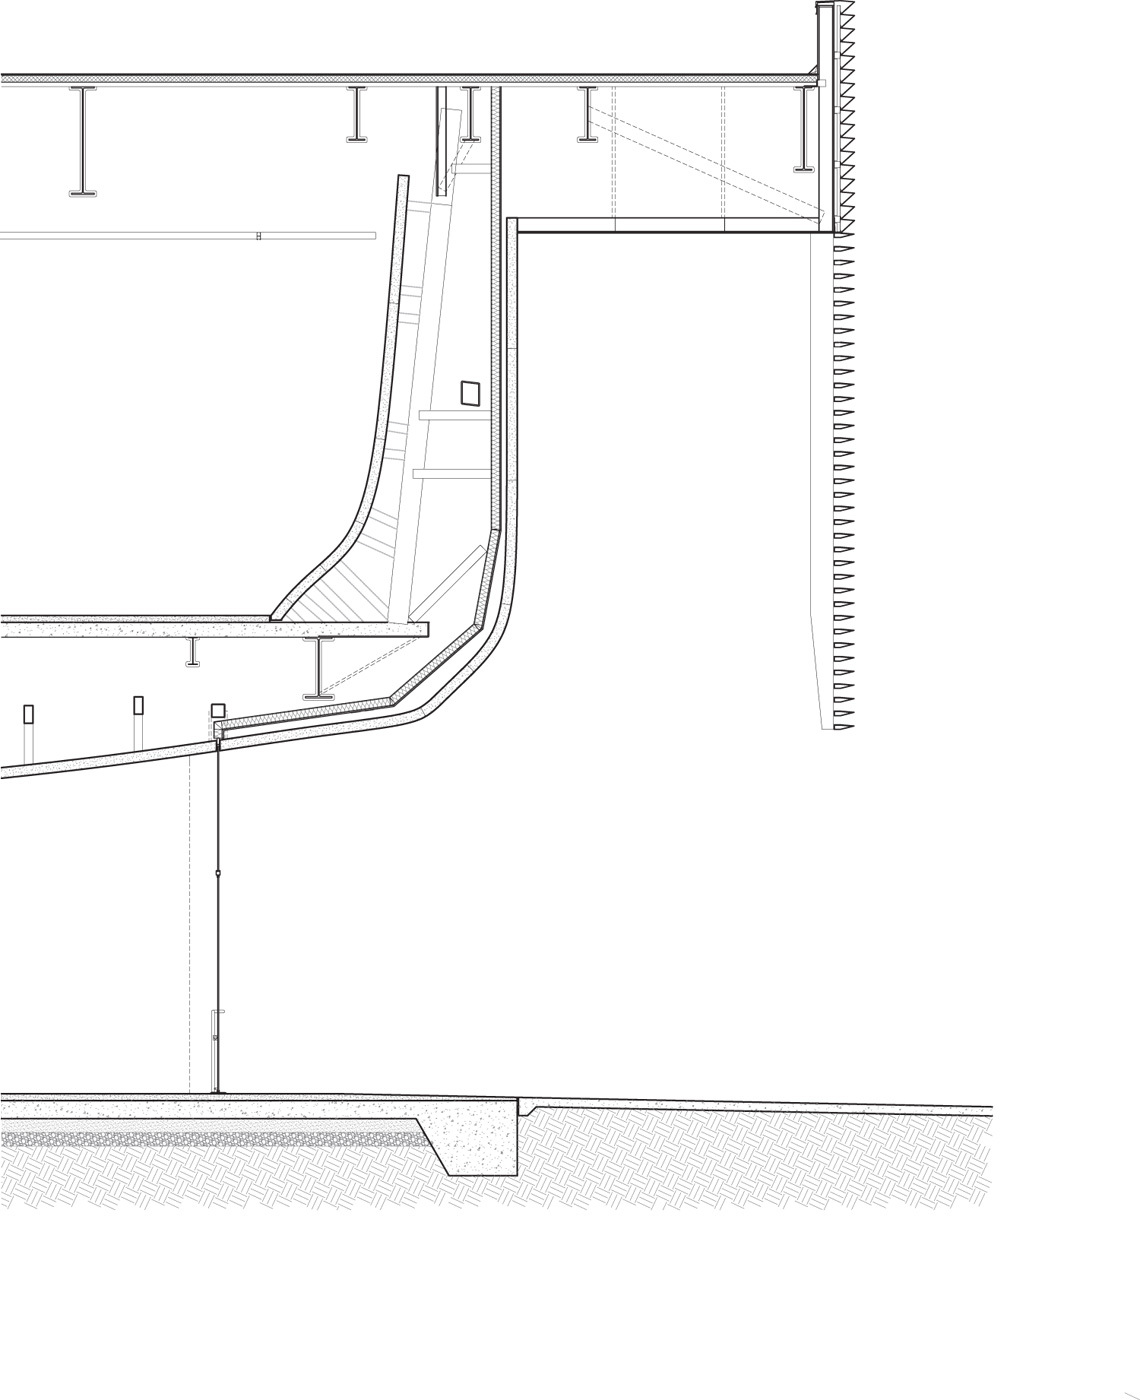 Section through door. Illustration courtesy of Trahan Architects